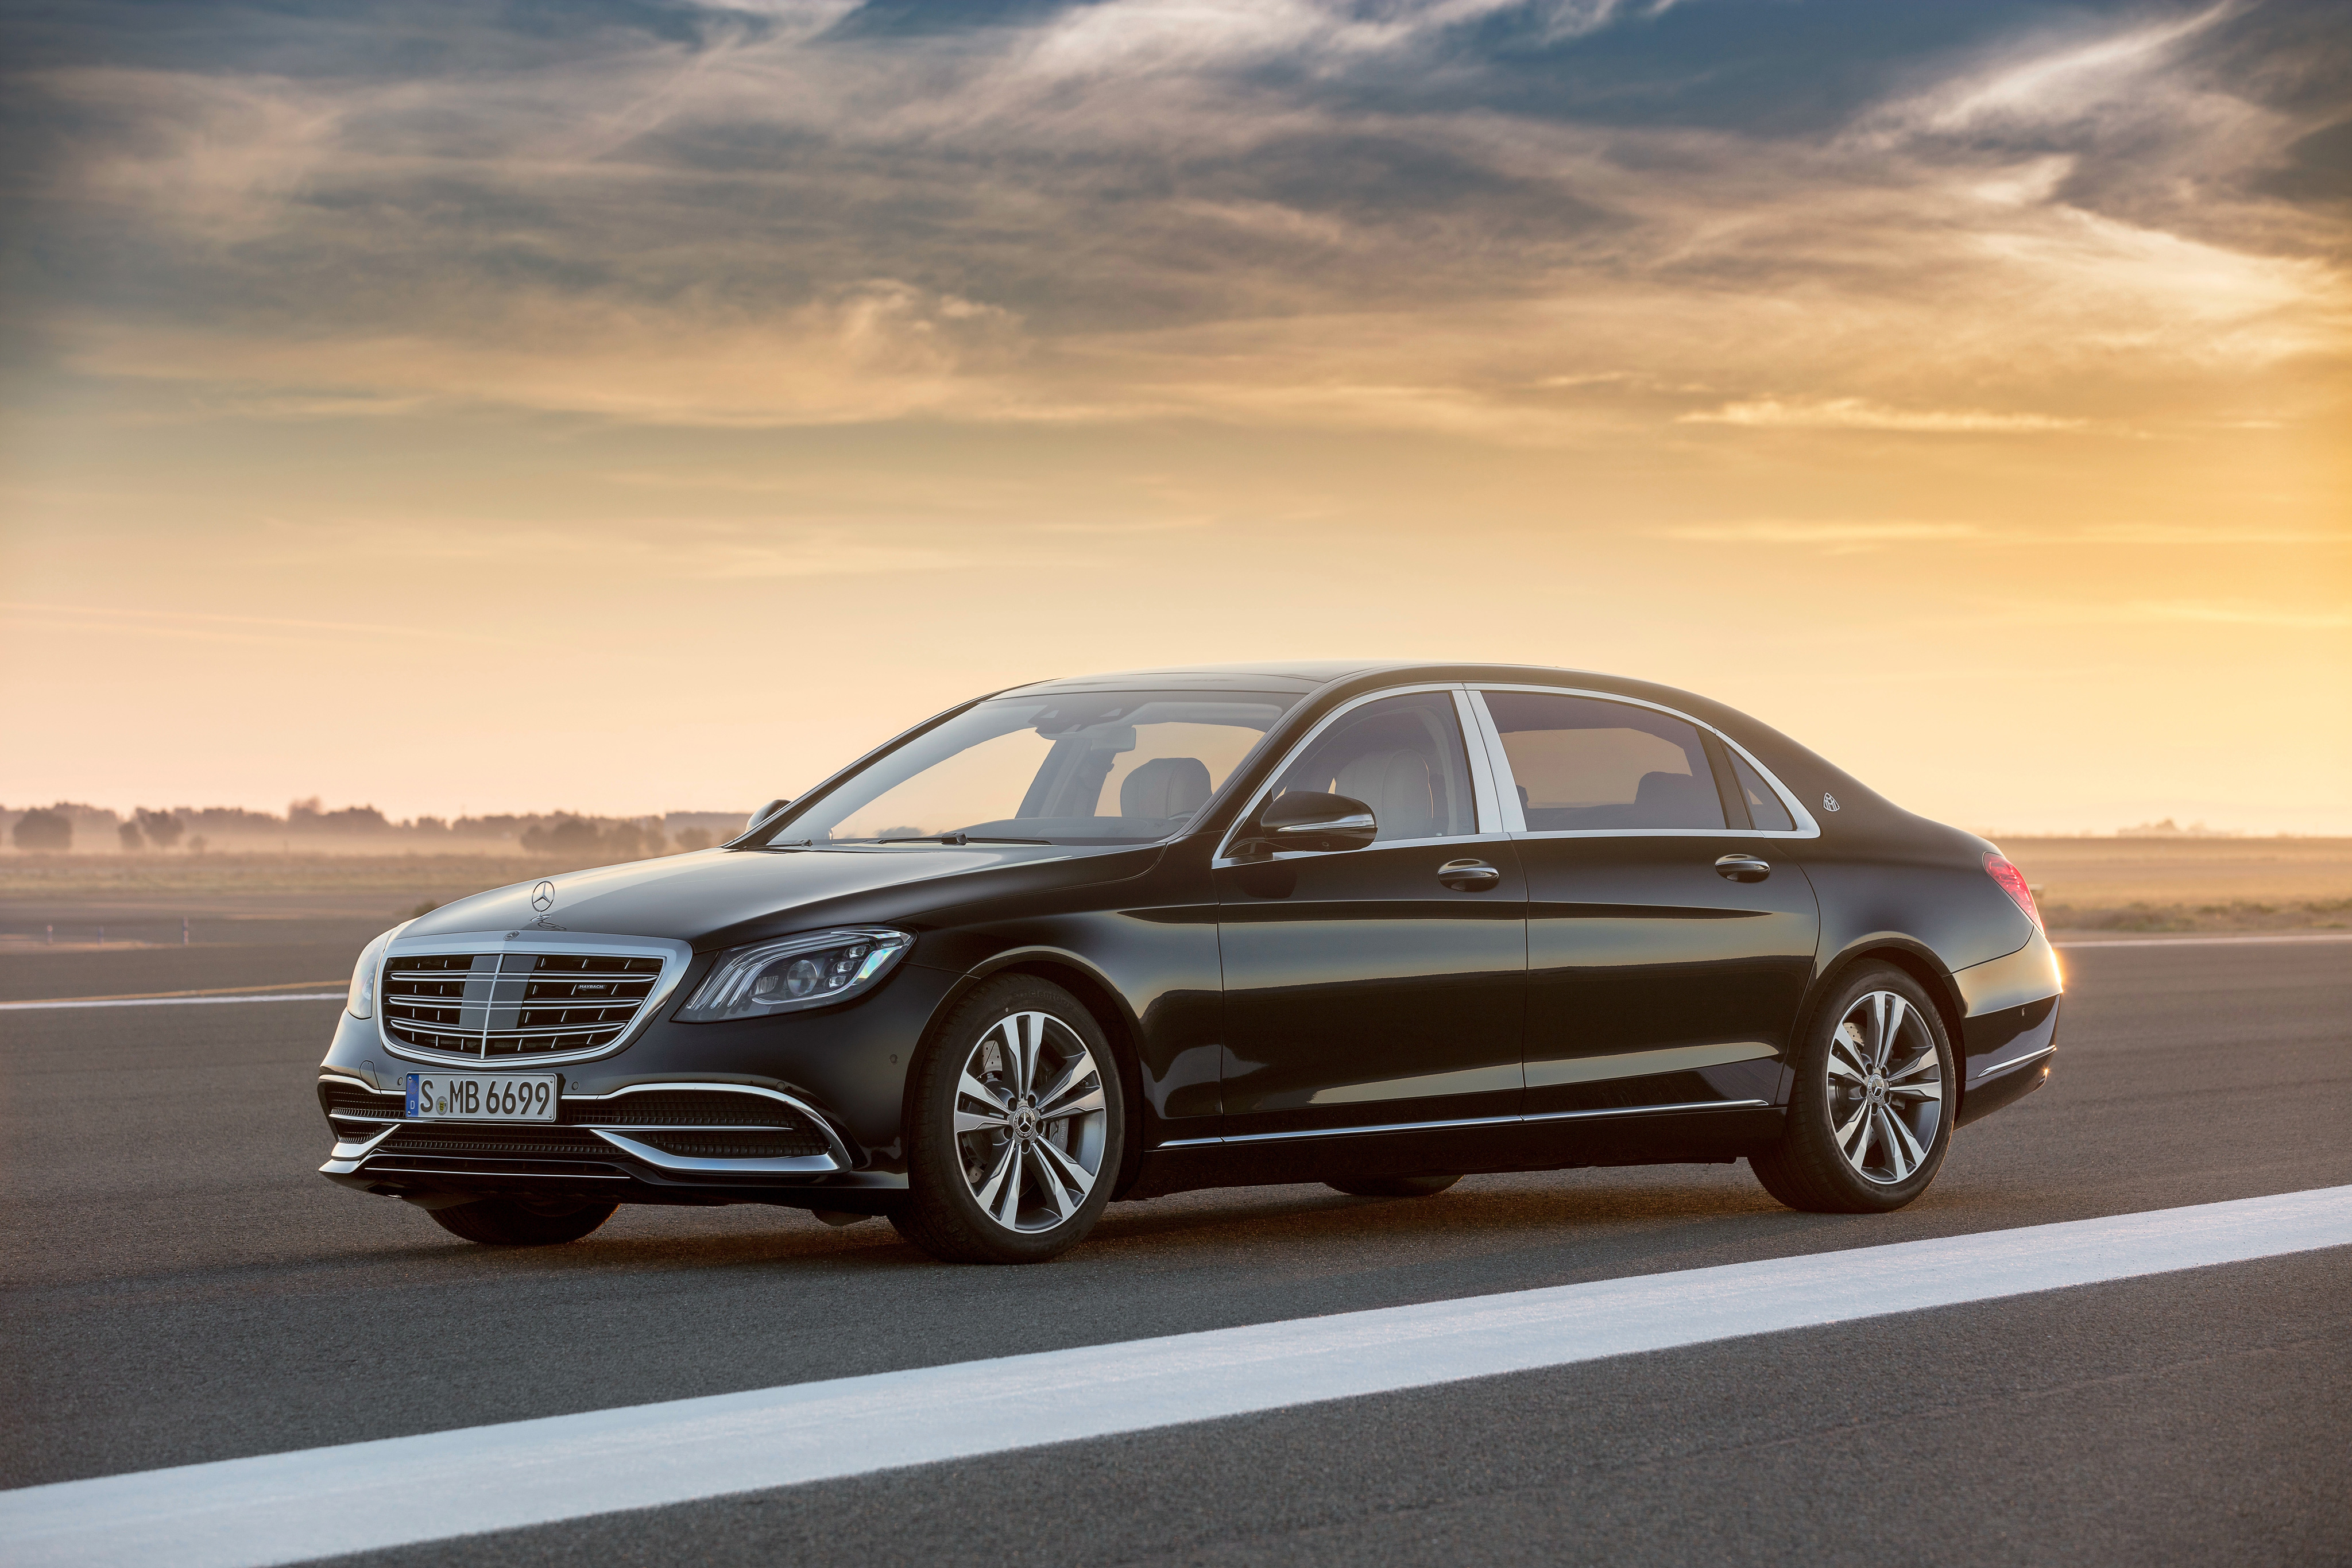 Mercedes maybach s 650 2017 hd cars 4k wallpapers for Mercedes benz 650